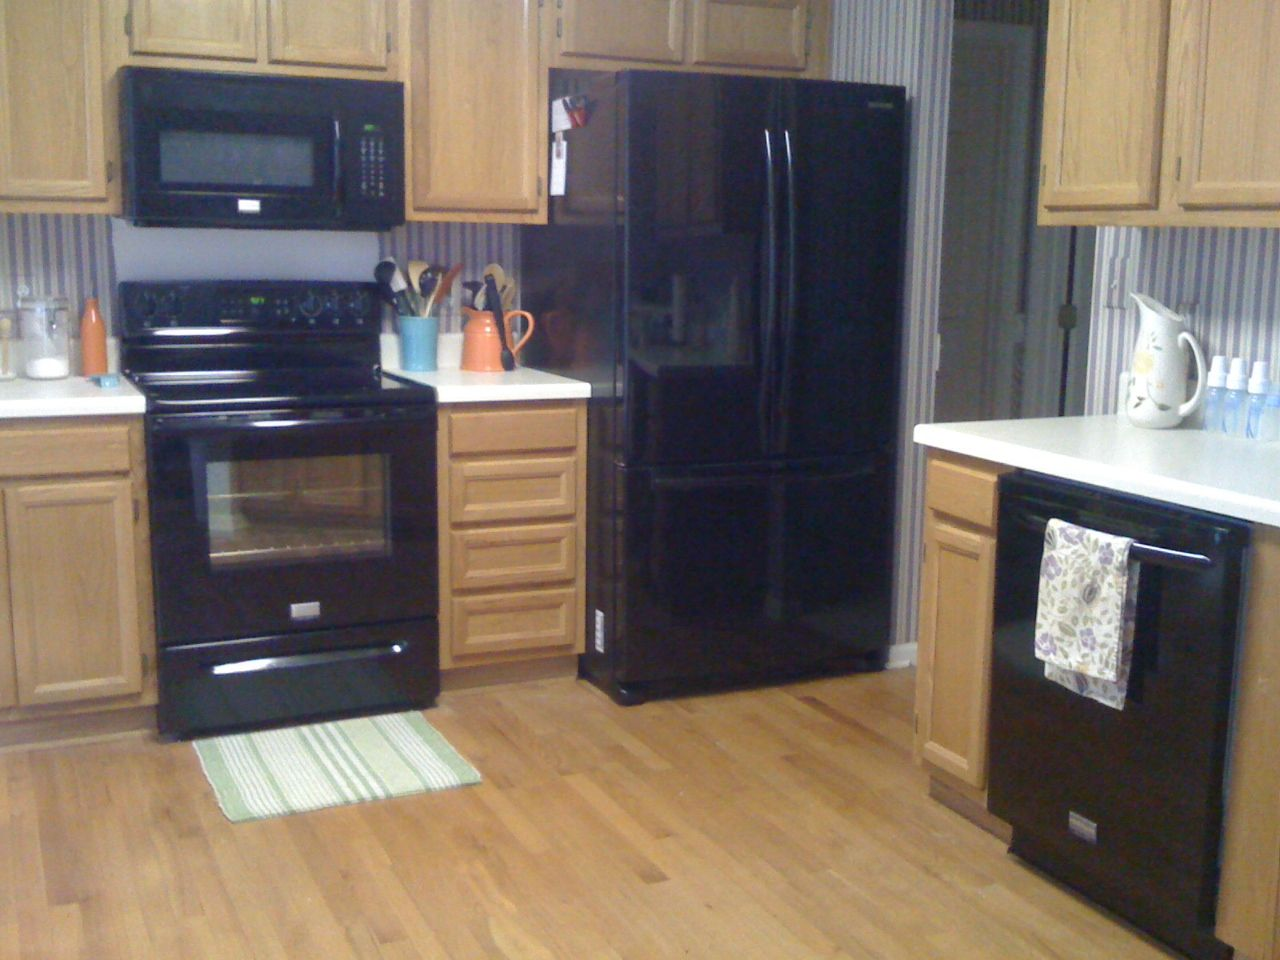 Kitchen Appliance Packages Home Depot Kitchens With Black Appliances Photos Kitchen Appliances